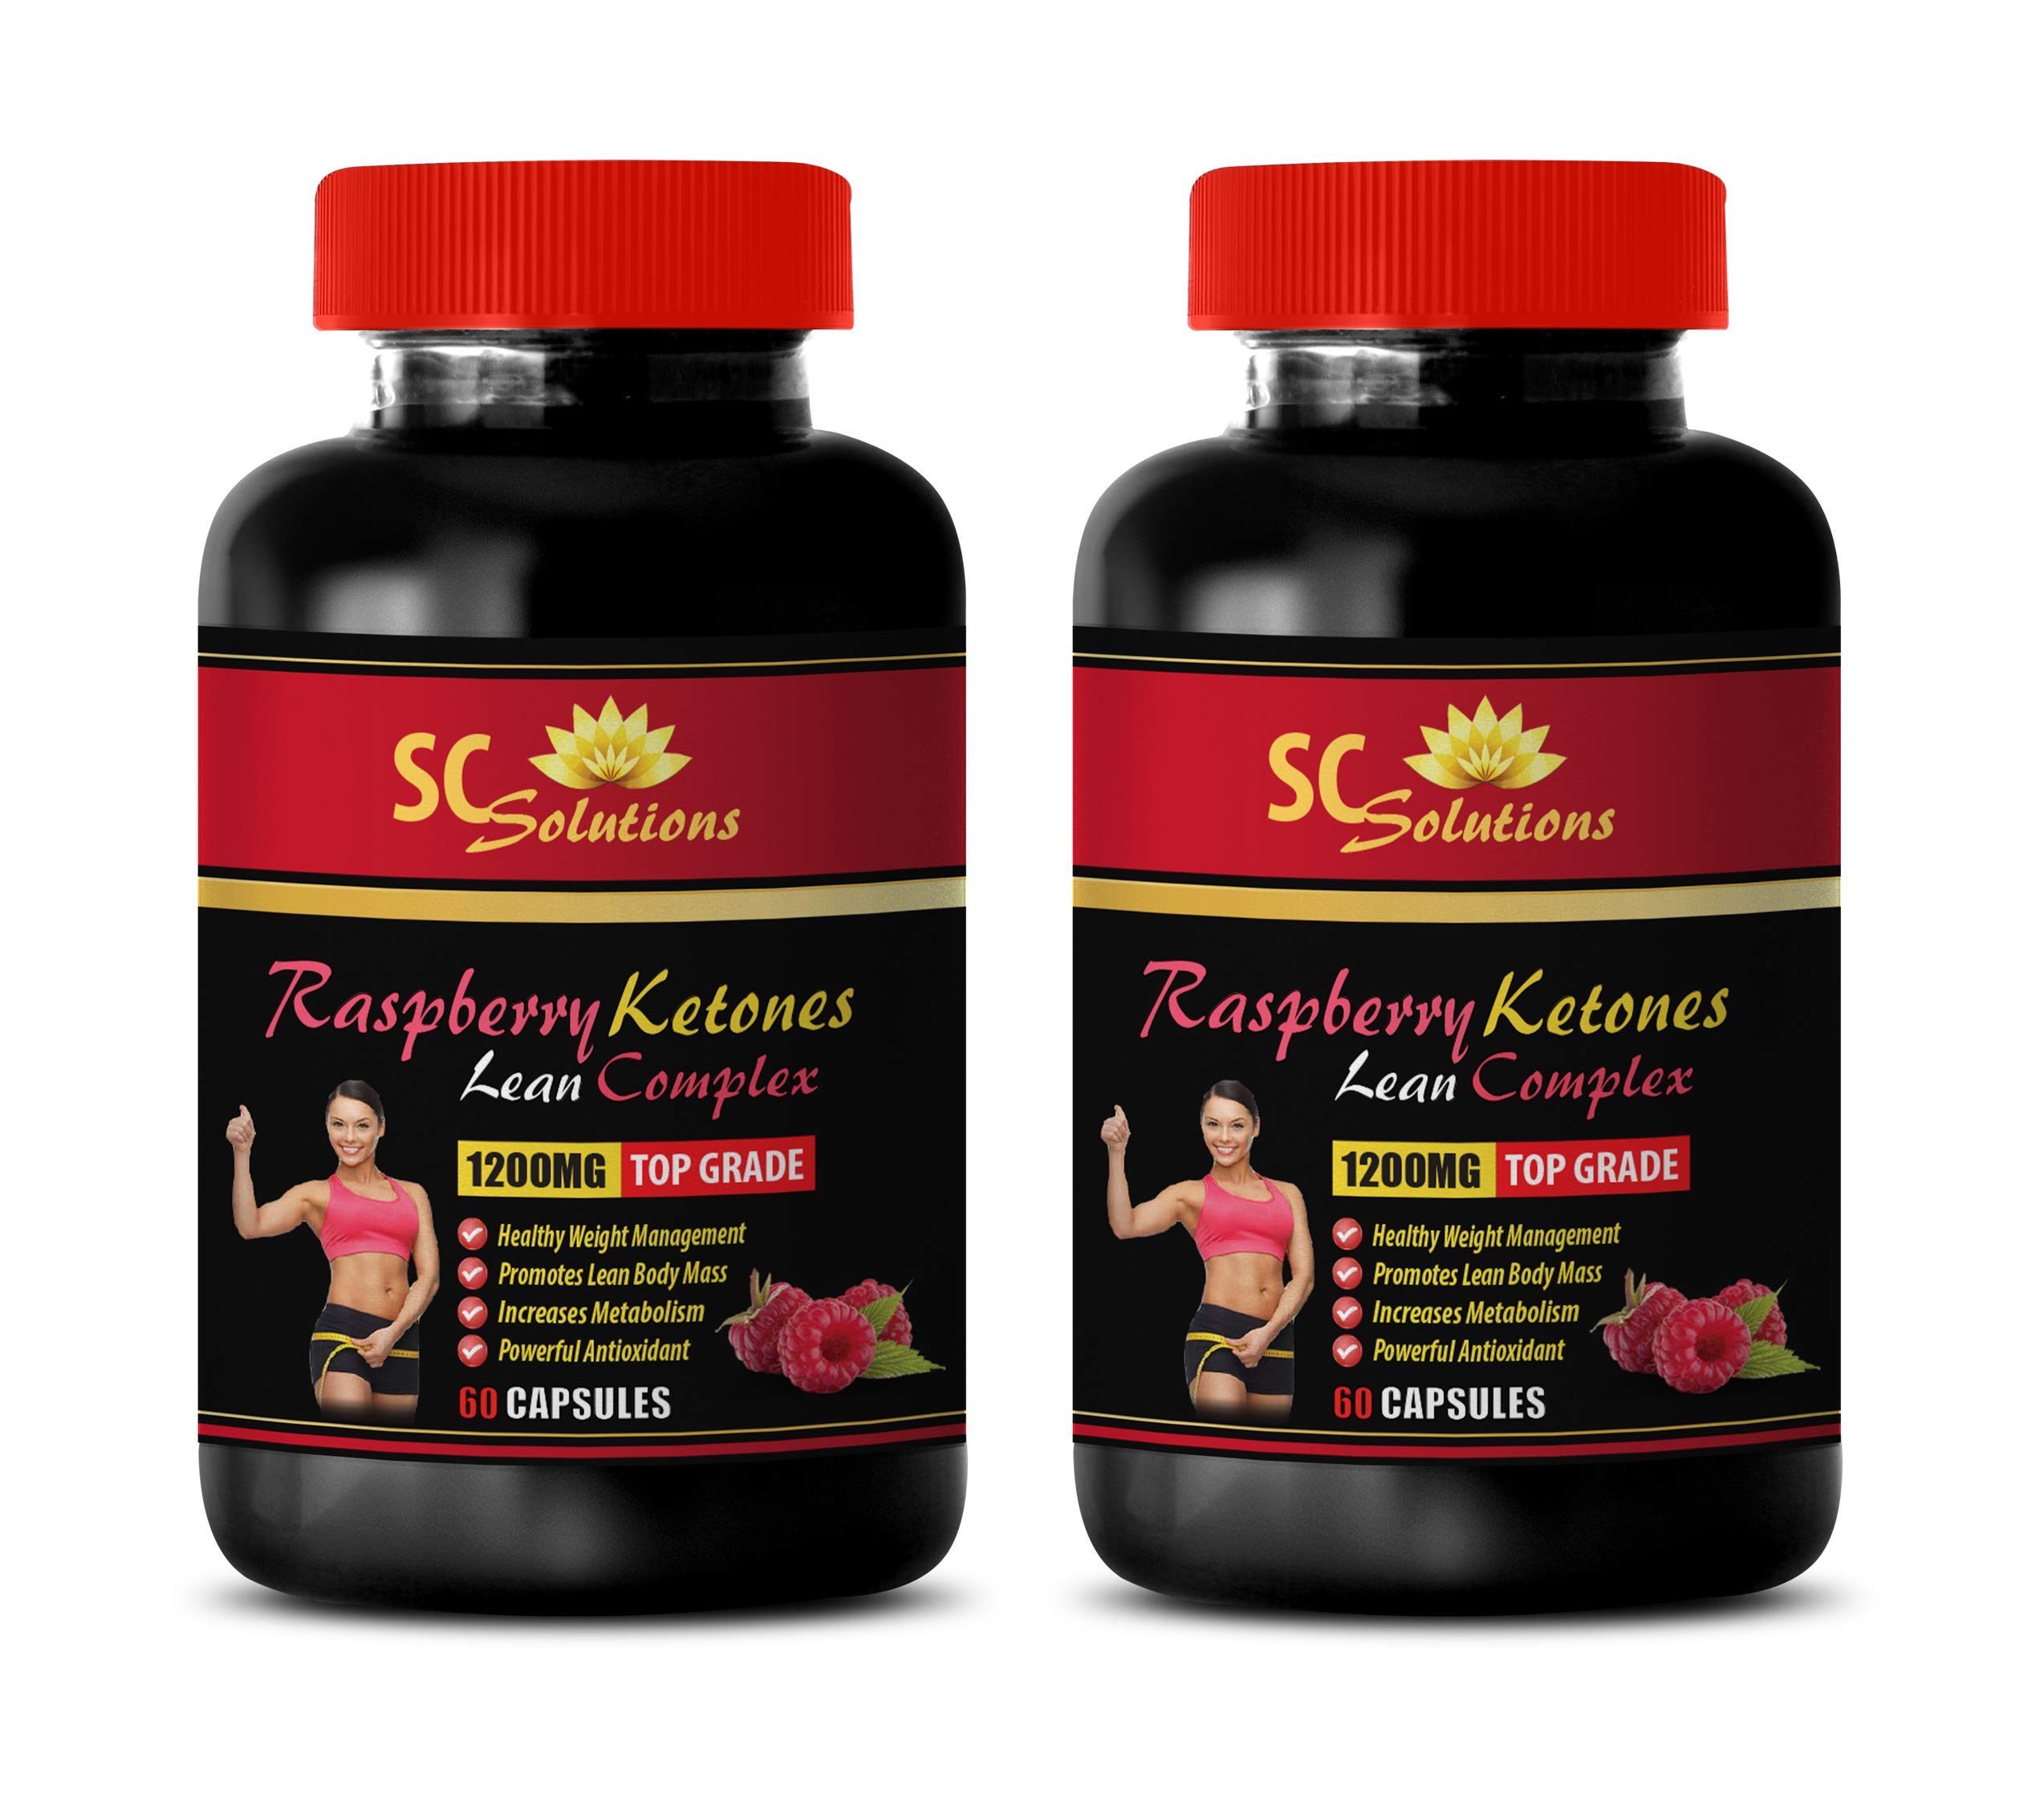 Metabolism Booster Plus Energy for Weight Loss - Raspberry Ketones Lean Complex 1200MG - TOP Grade - Raspberry Ketone for Weight Loss - 2 Bottles (120 Capsules)